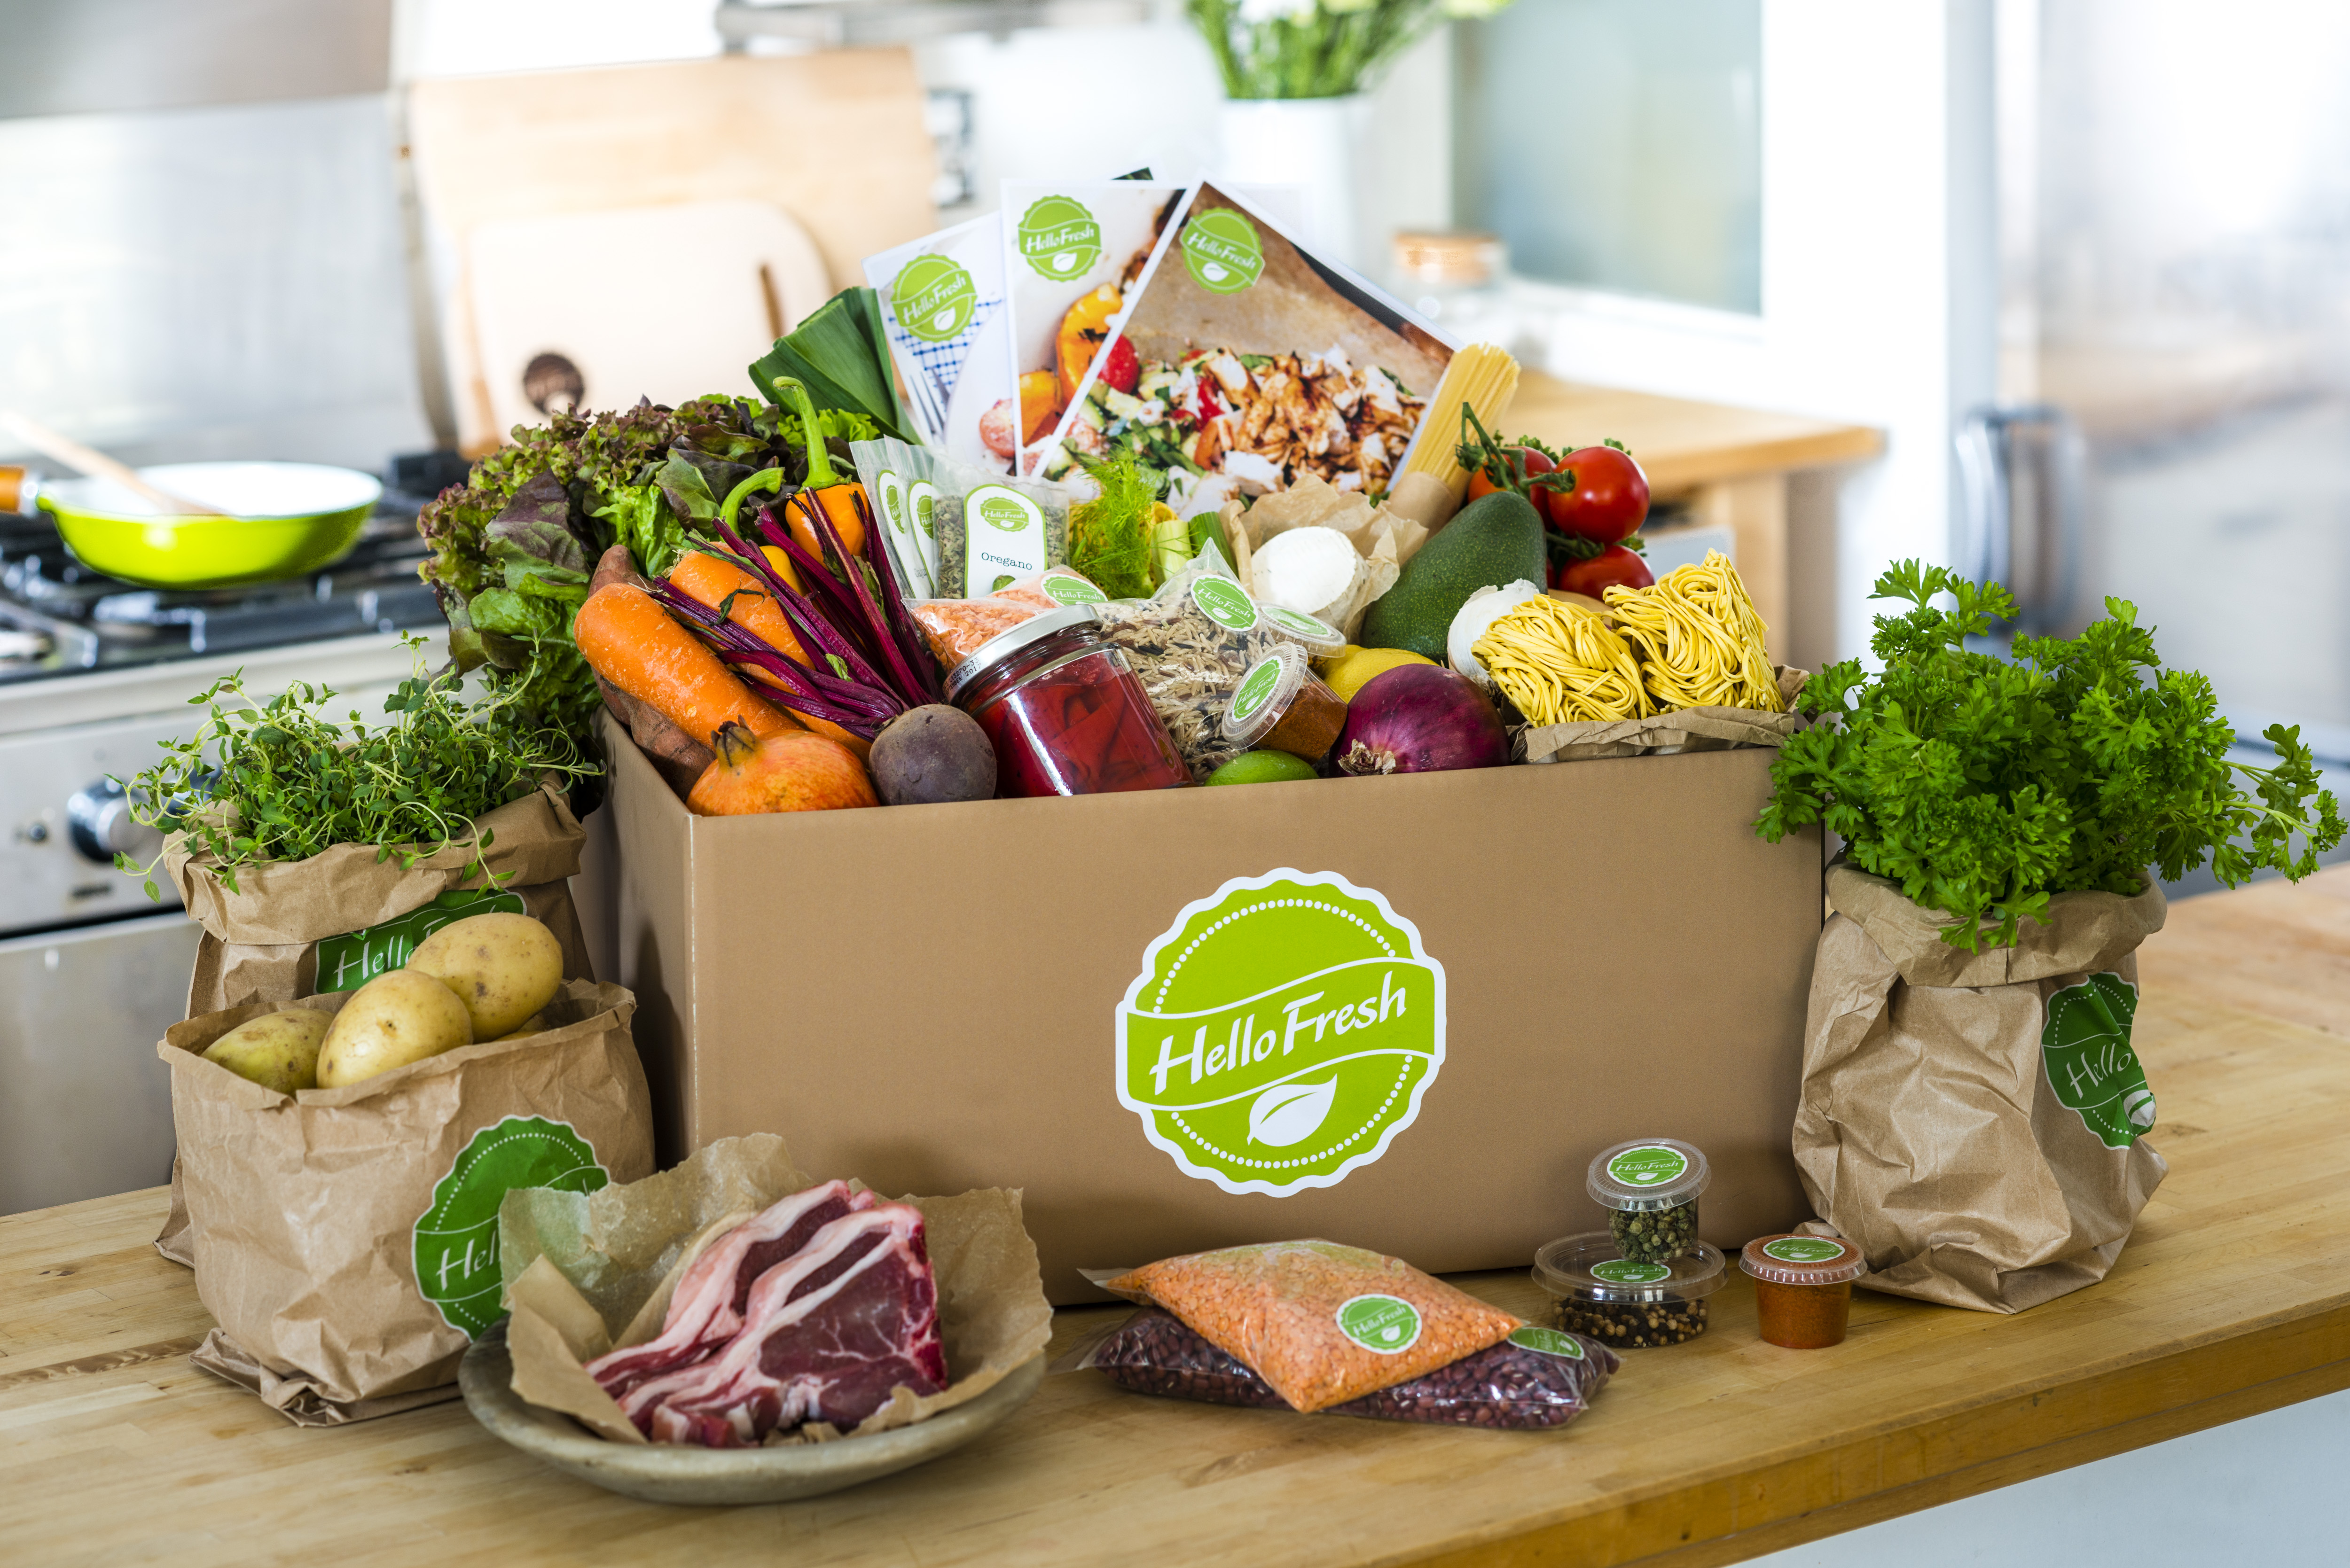 Where Is Hellofresh Available